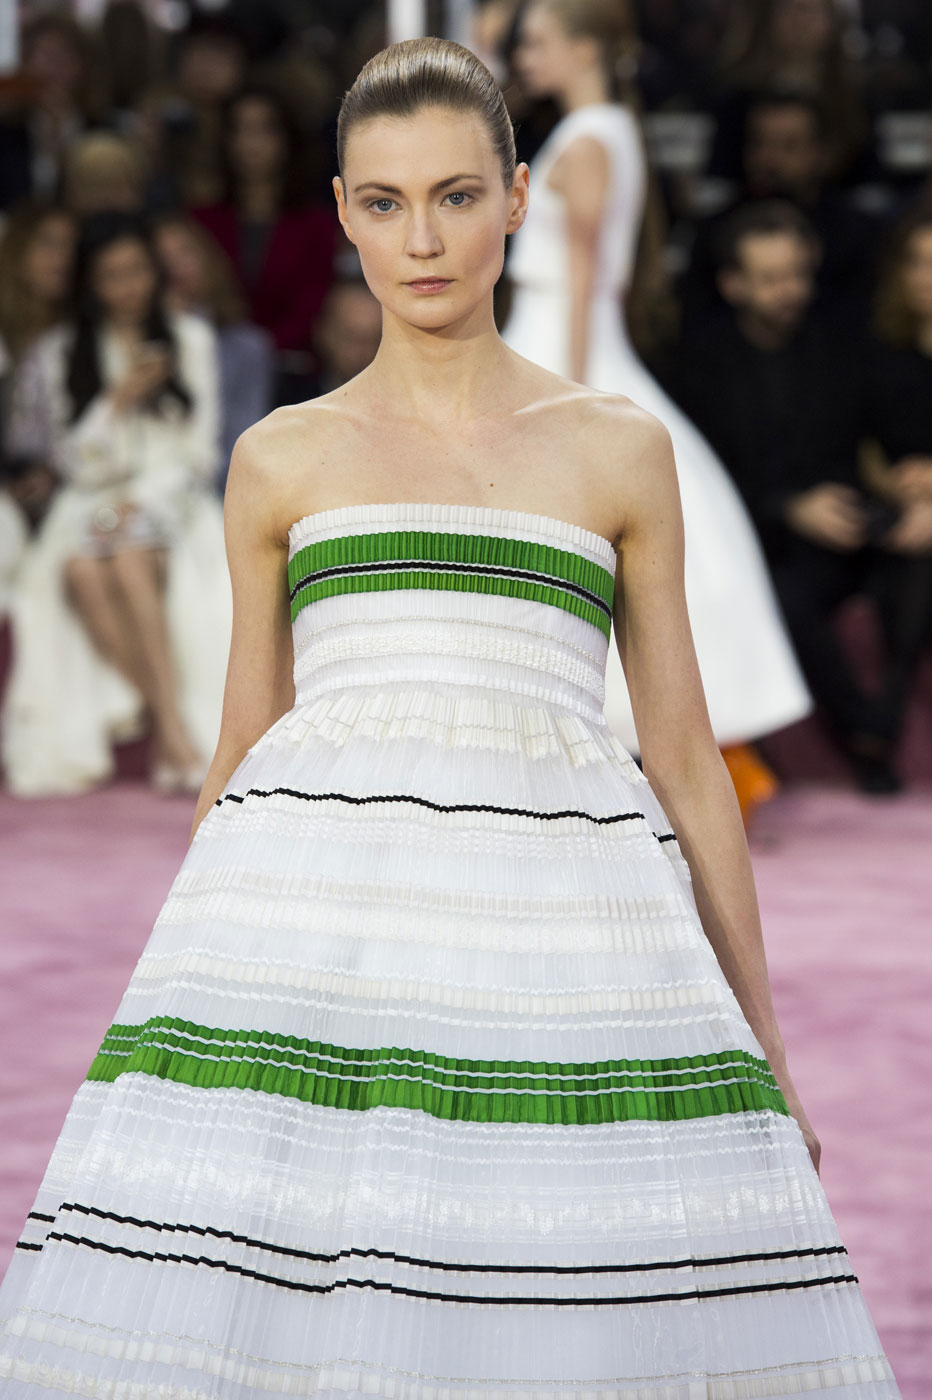 Christian-Dior-fashion-runway-show-haute-couture-paris-spring-summer-2015-the-impression-107